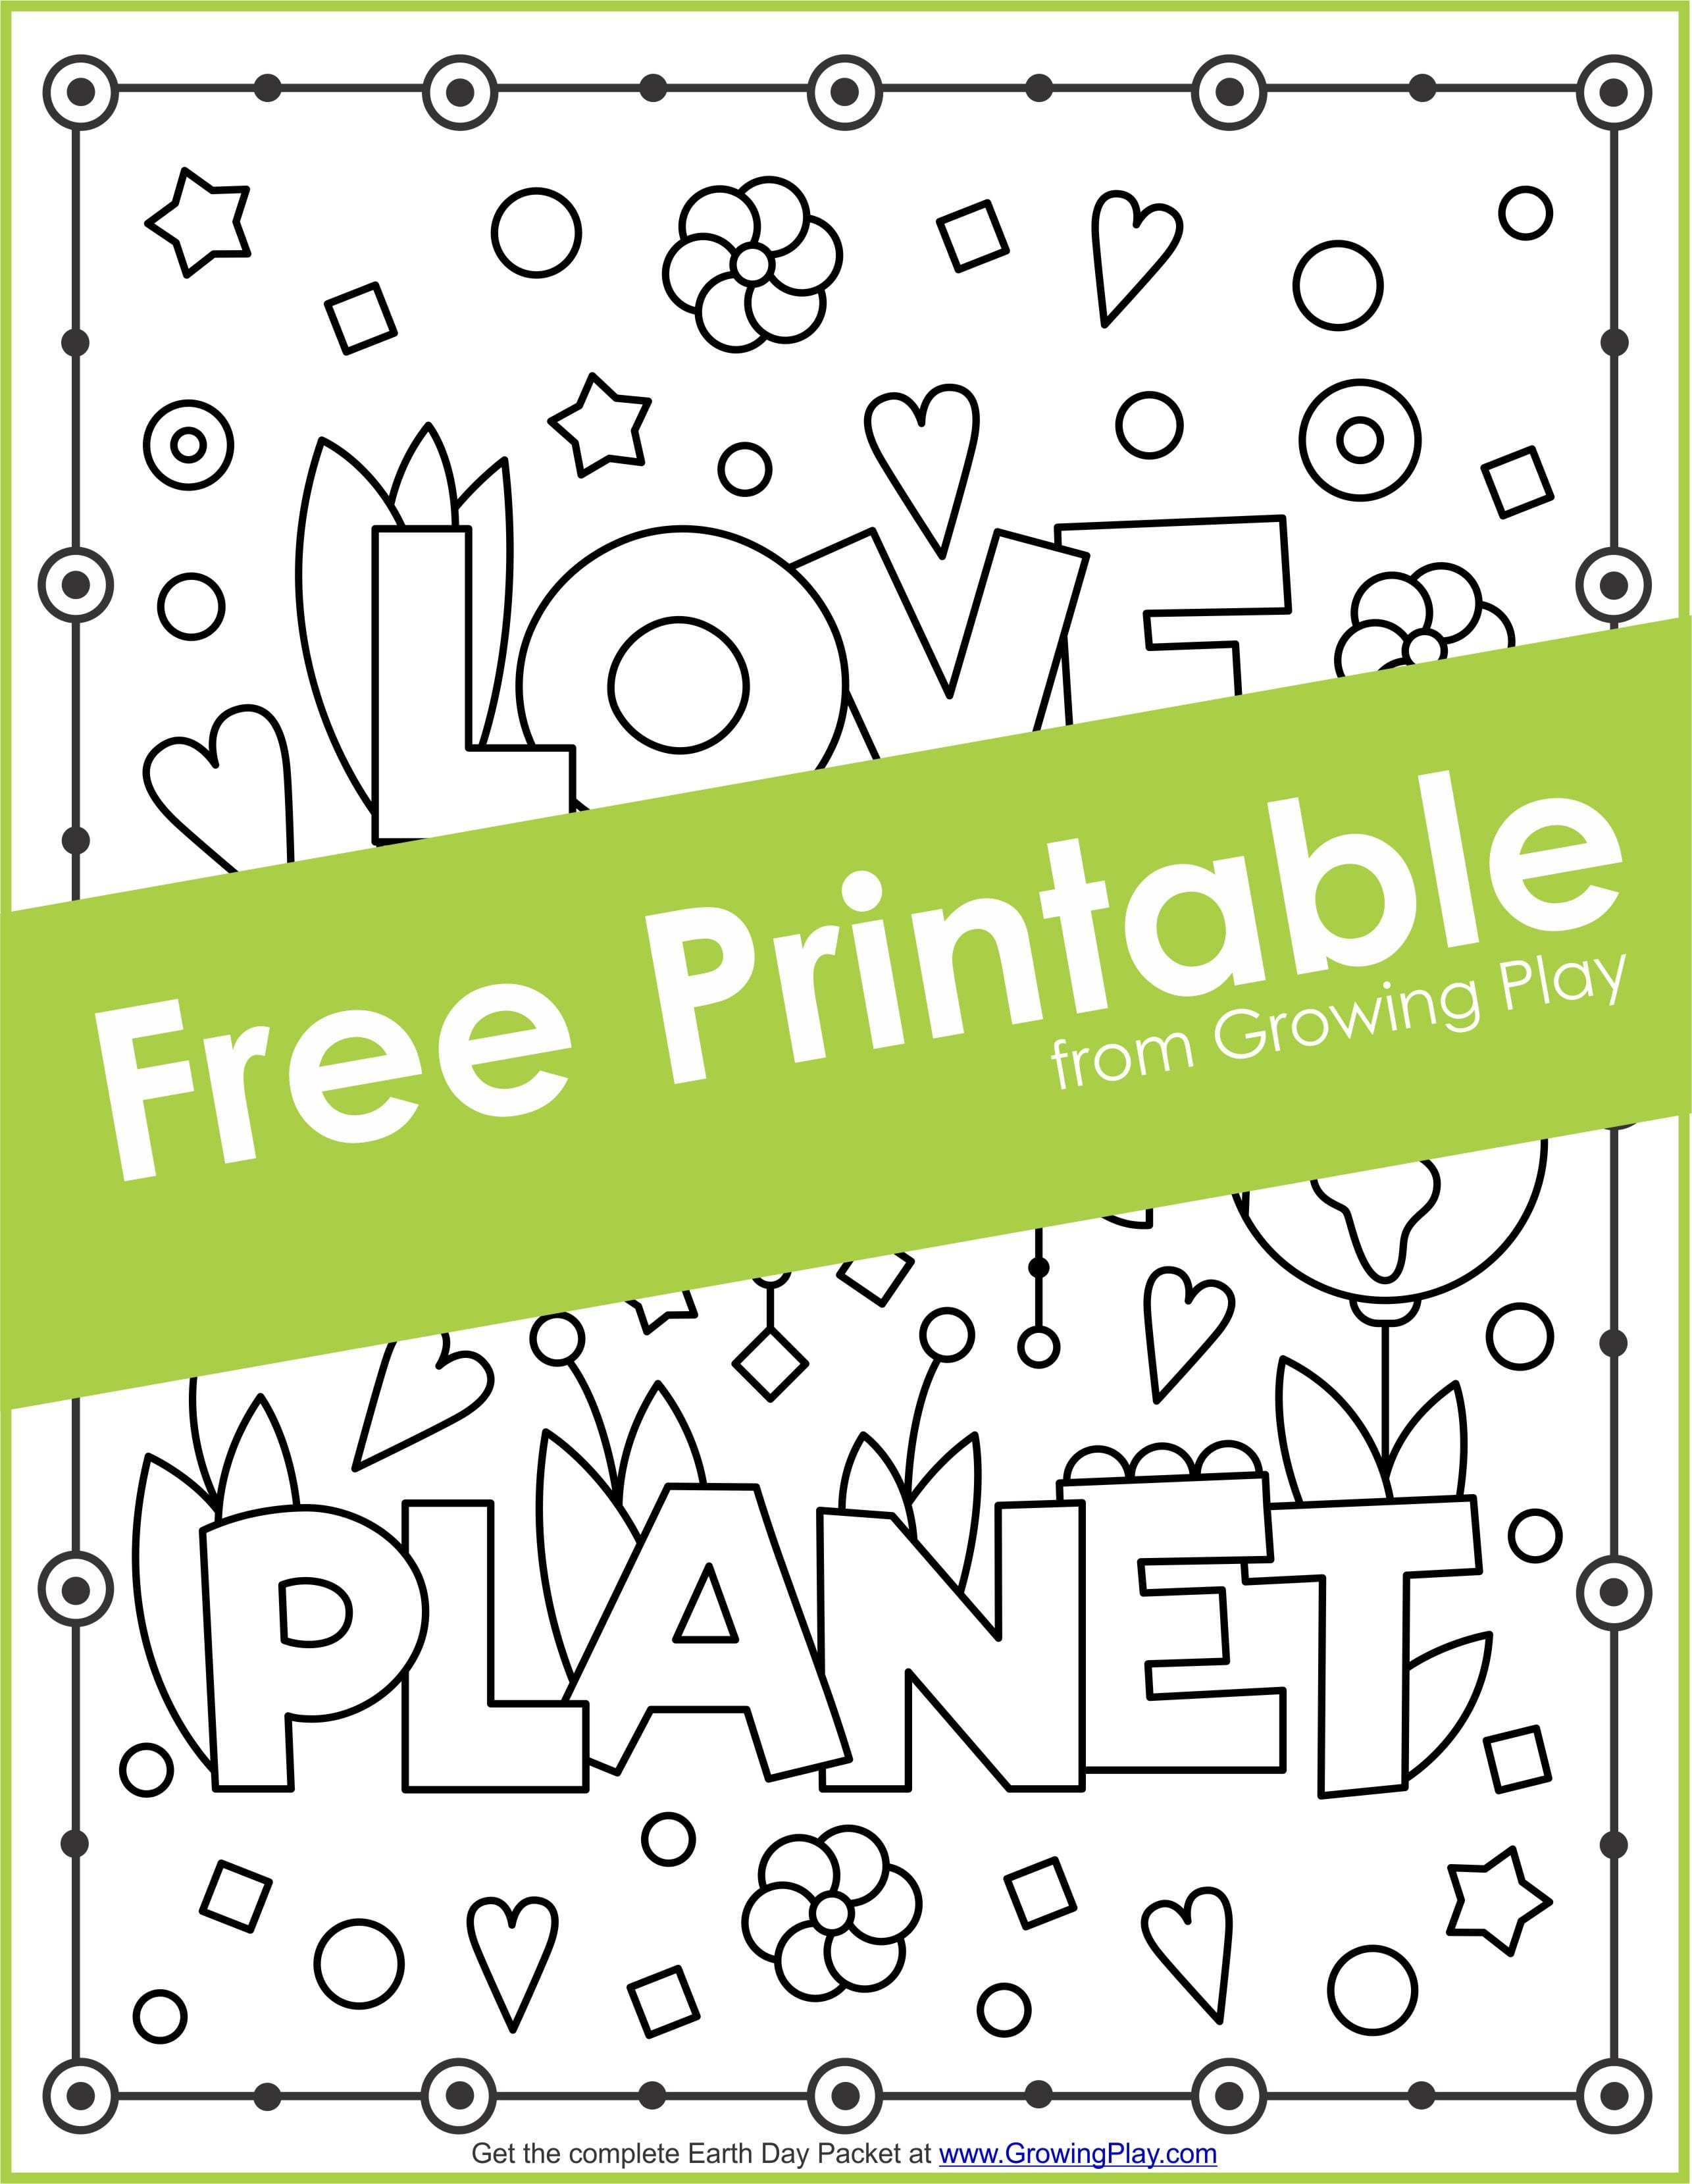 Earth Day Puzzle Packet - Your Therapy Source - Printable Puzzle Packet